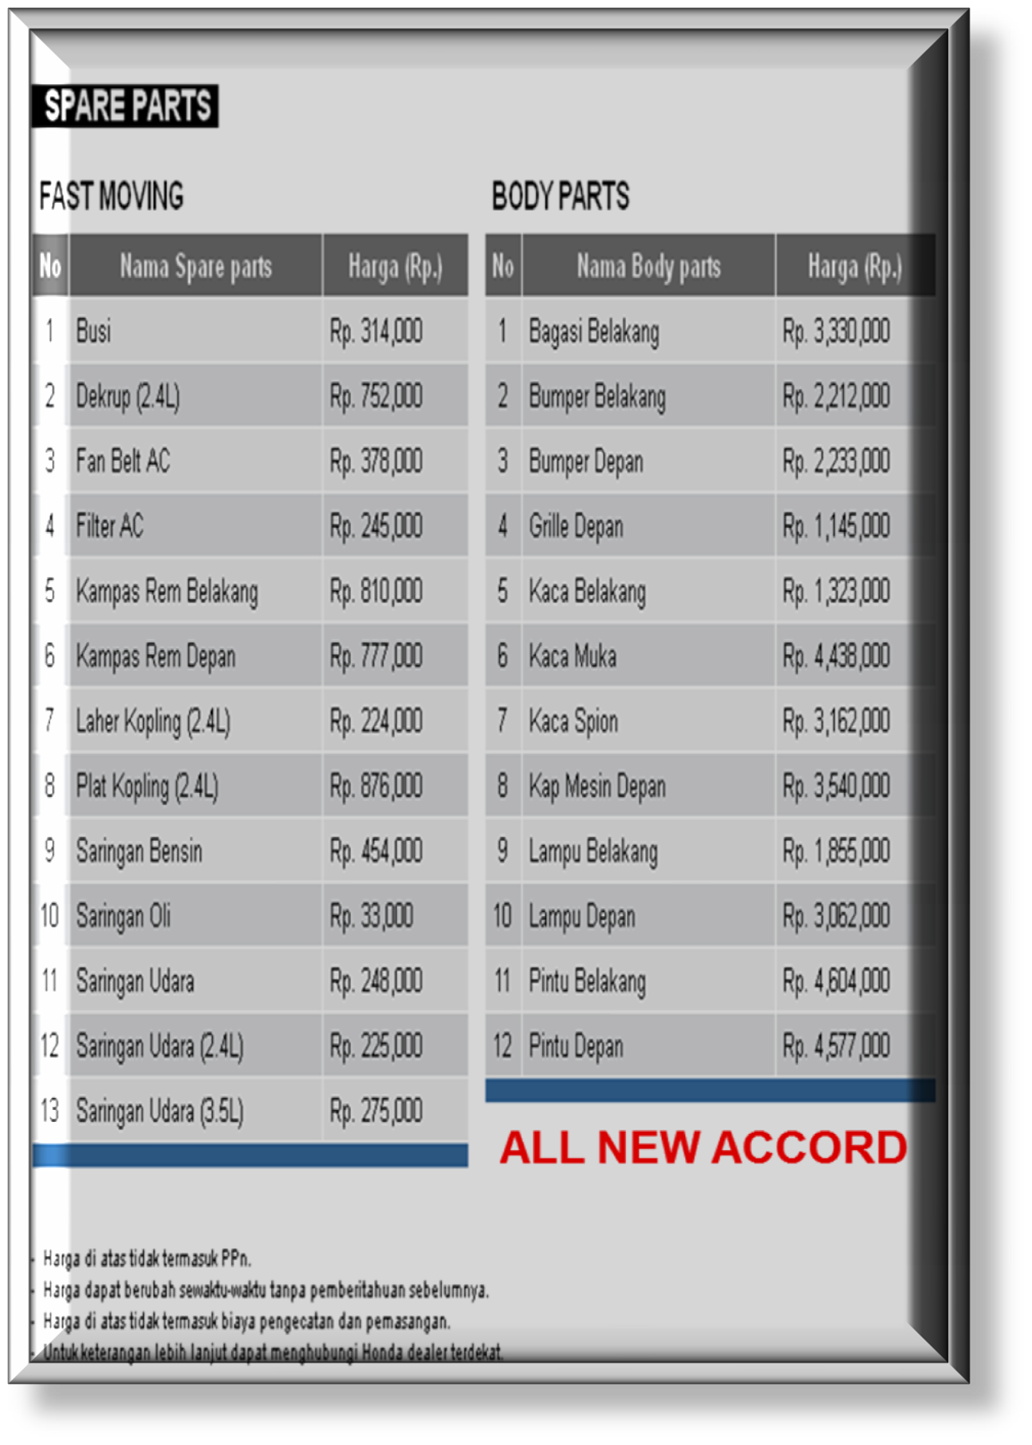 Harga Sparepart All New Accord 2014